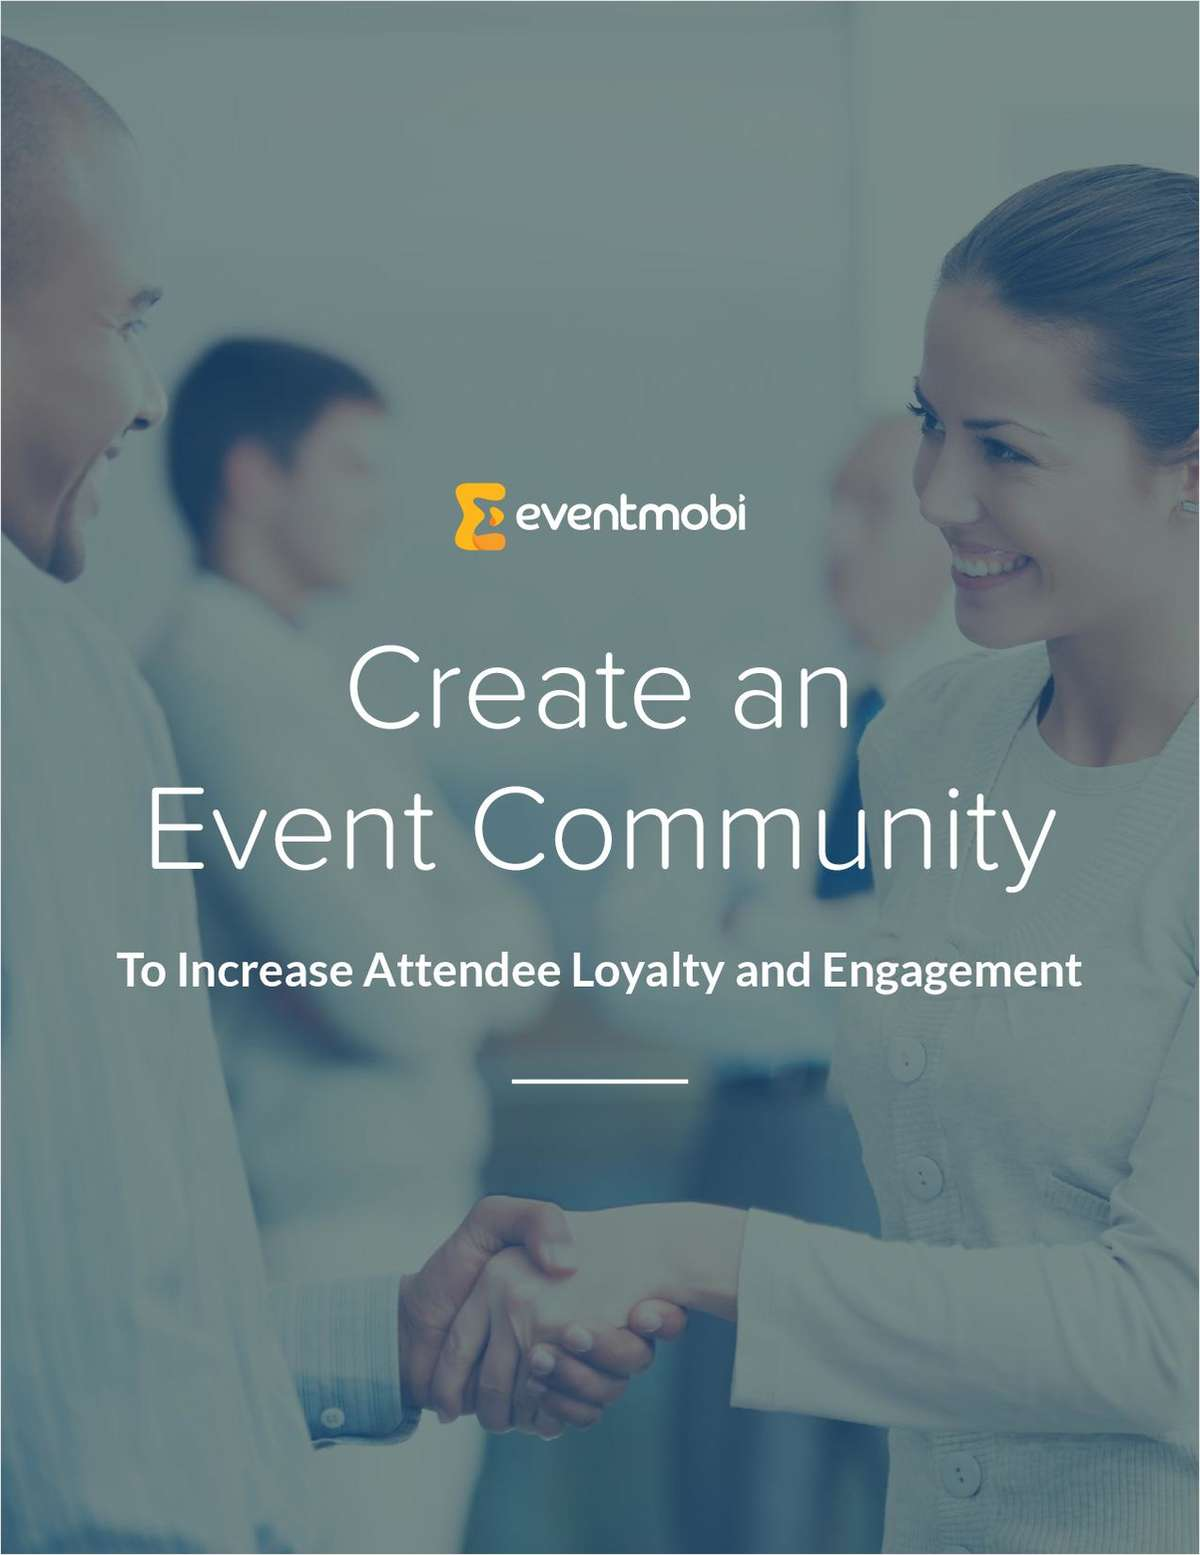 [eBook] Create an Event Community to Increase Attendee Loyalty & Engagement